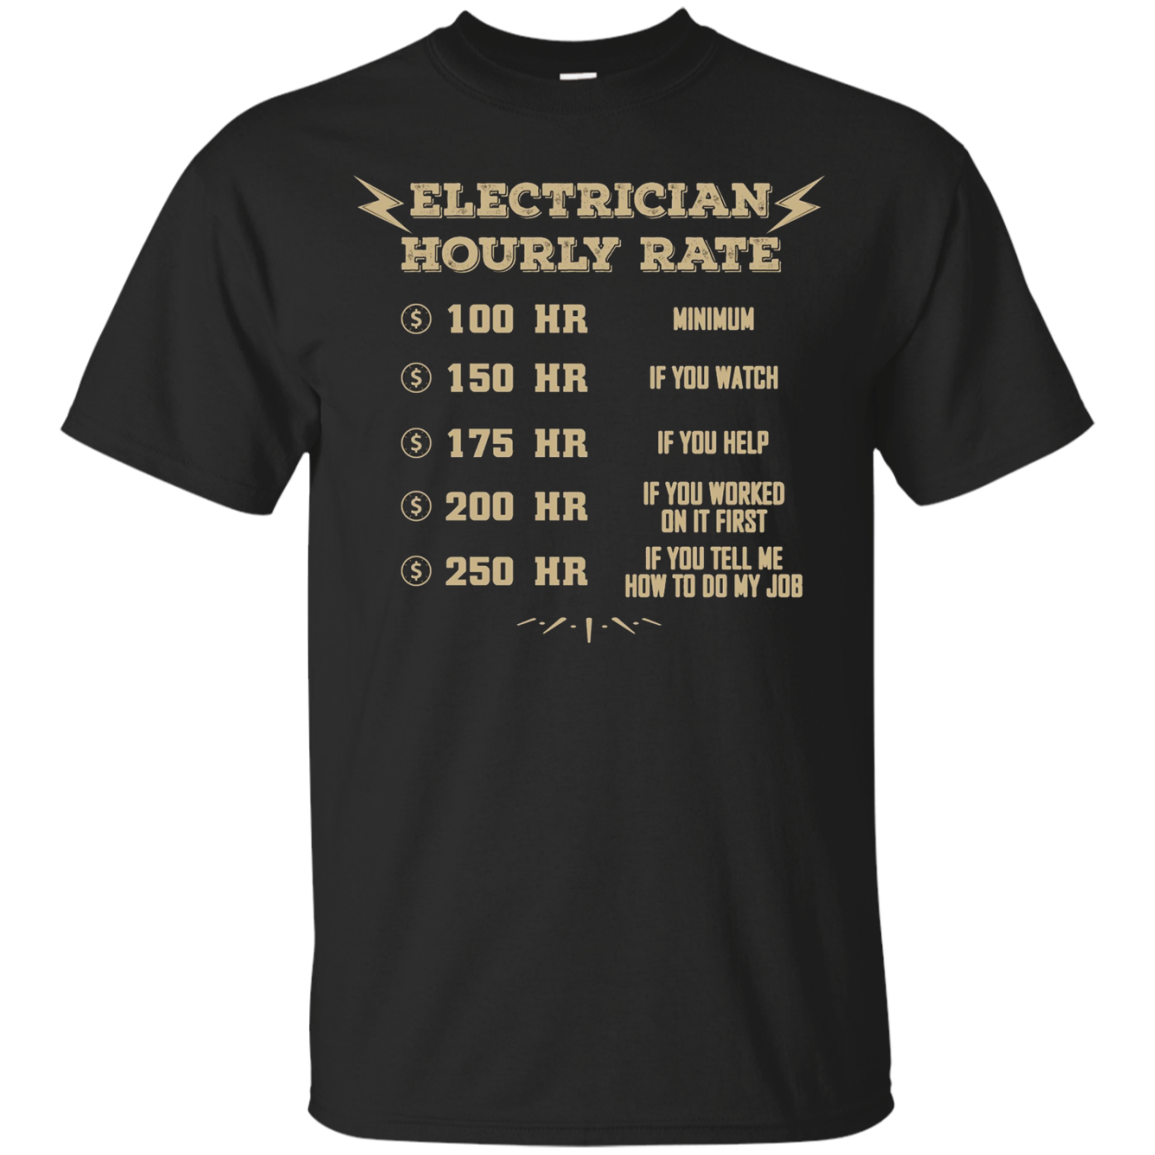 Electrician T-Shirt - Electrician Hourly Rate